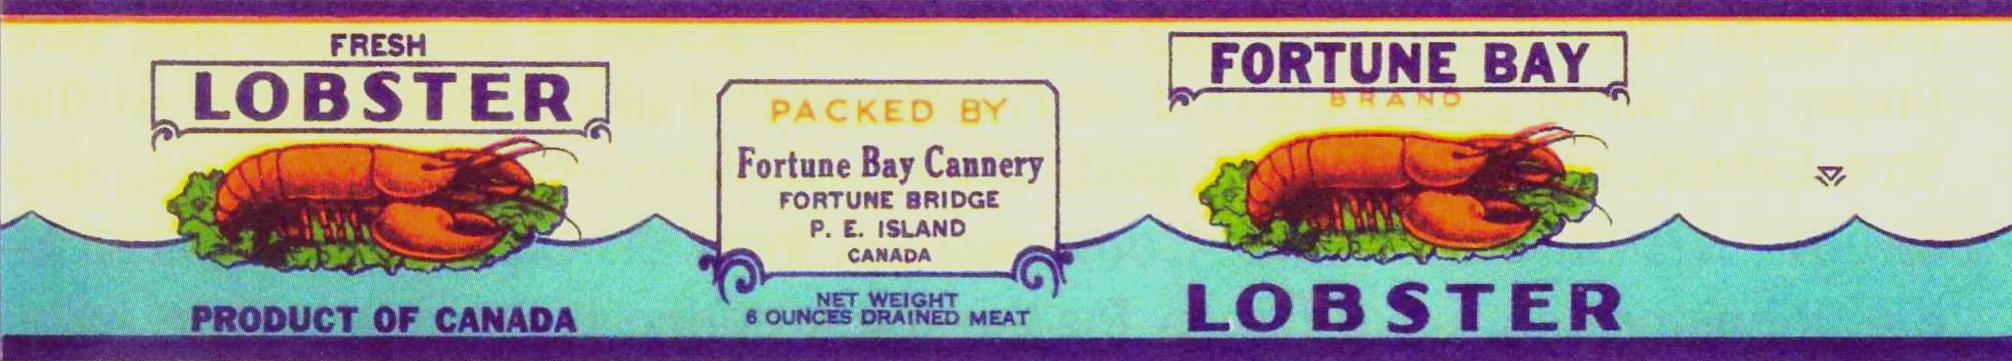 Fortune-Bay-Cannery-Label.jpg